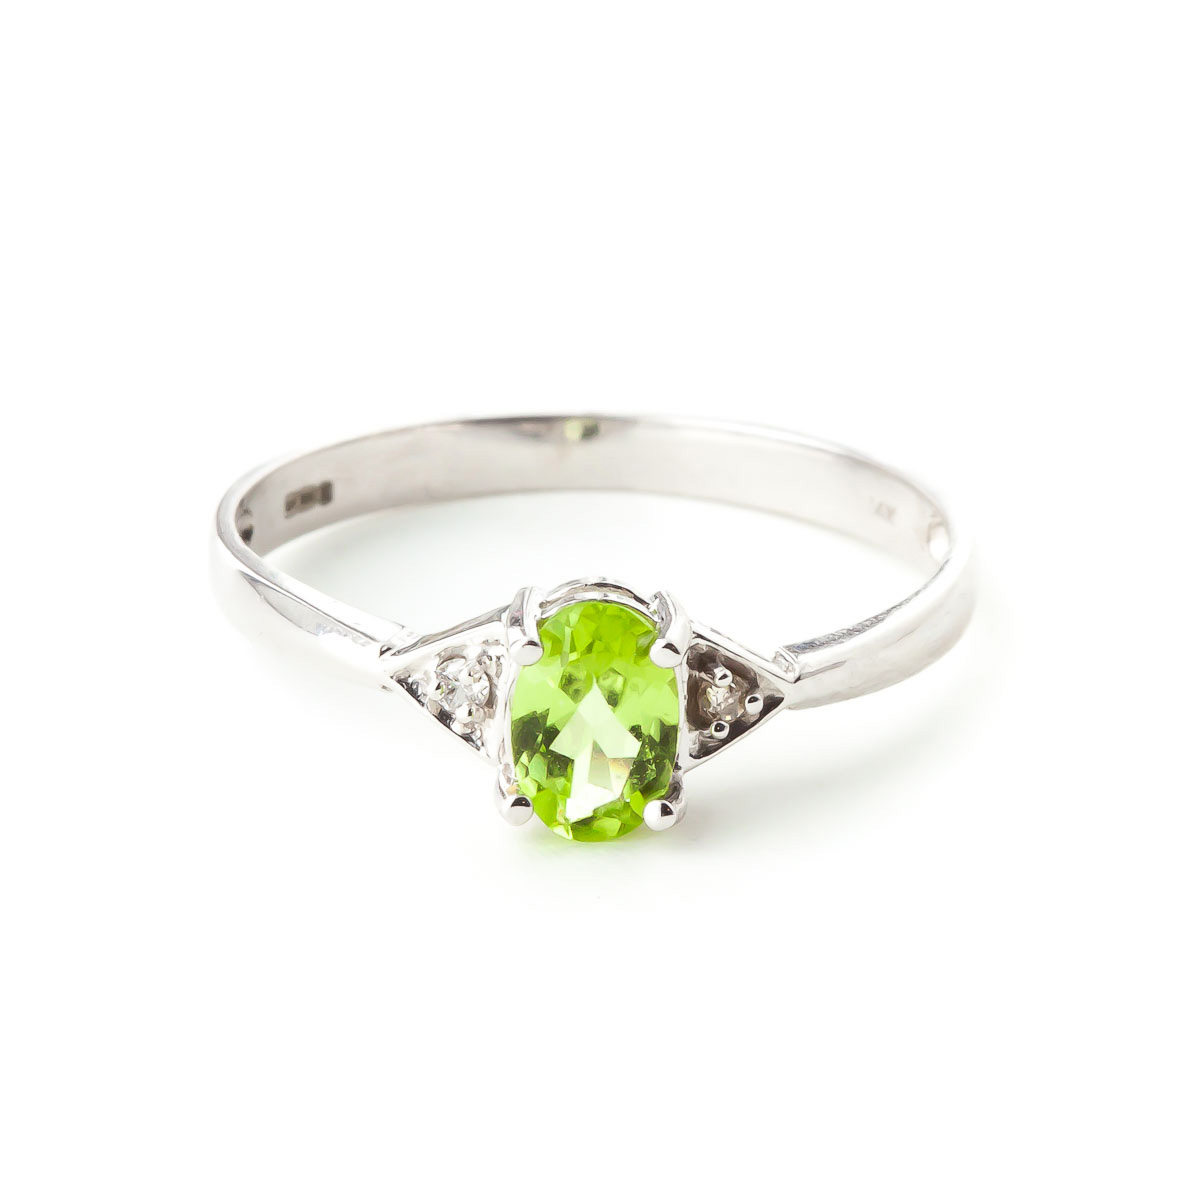 Peridot & Diamond Allure Ring in 18ct White Gold